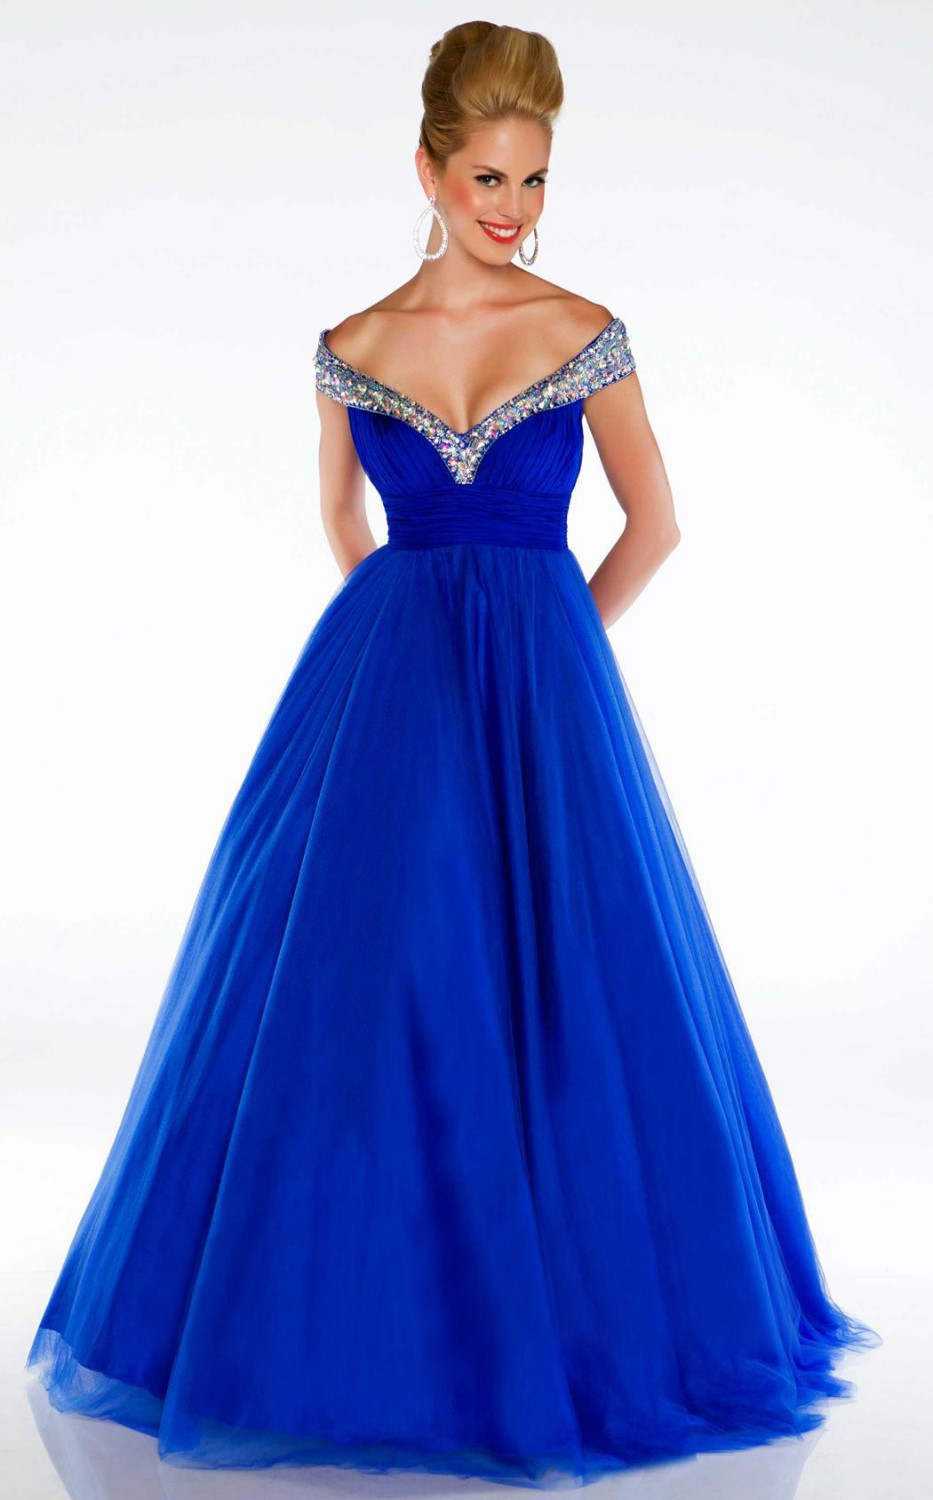 2016 detachable skirts quinceanera dresses vestidos de 15 anos cheap gowns Royal Blue v-neck Line Pageant Dresses - New York Brides store